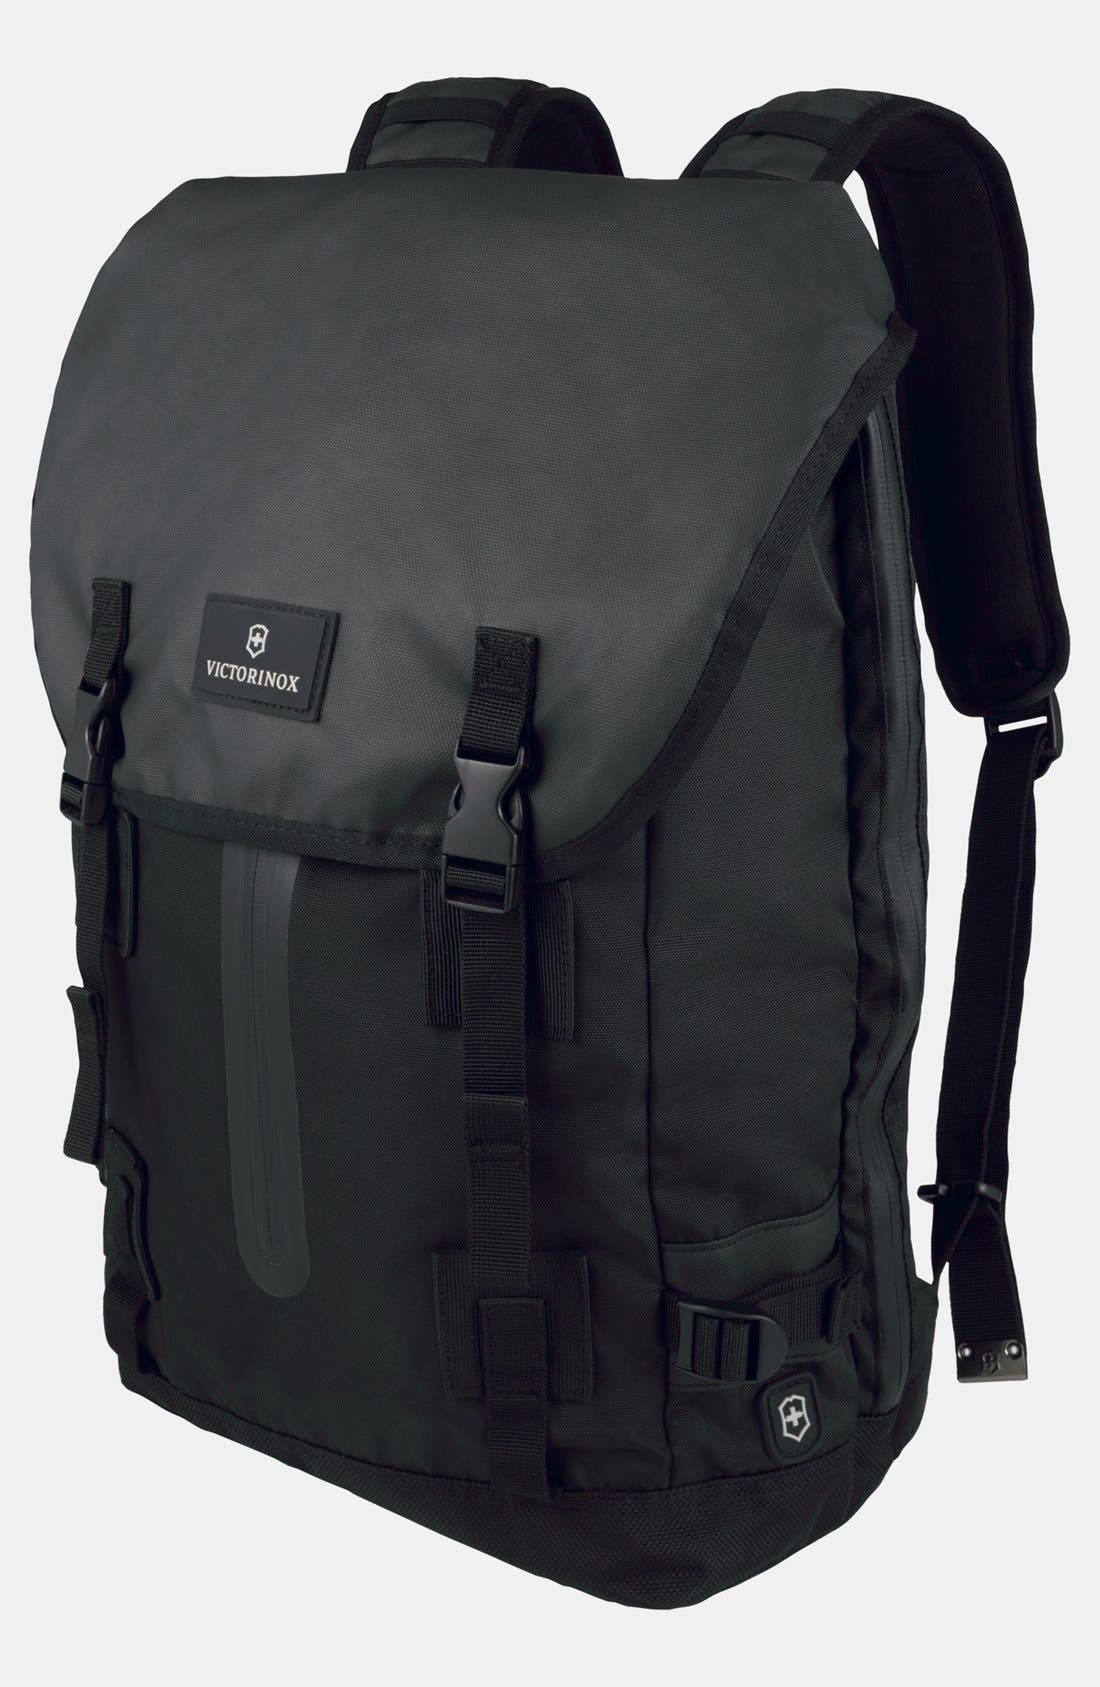 Victorinox Swiss Army Flapover Backpack - Black